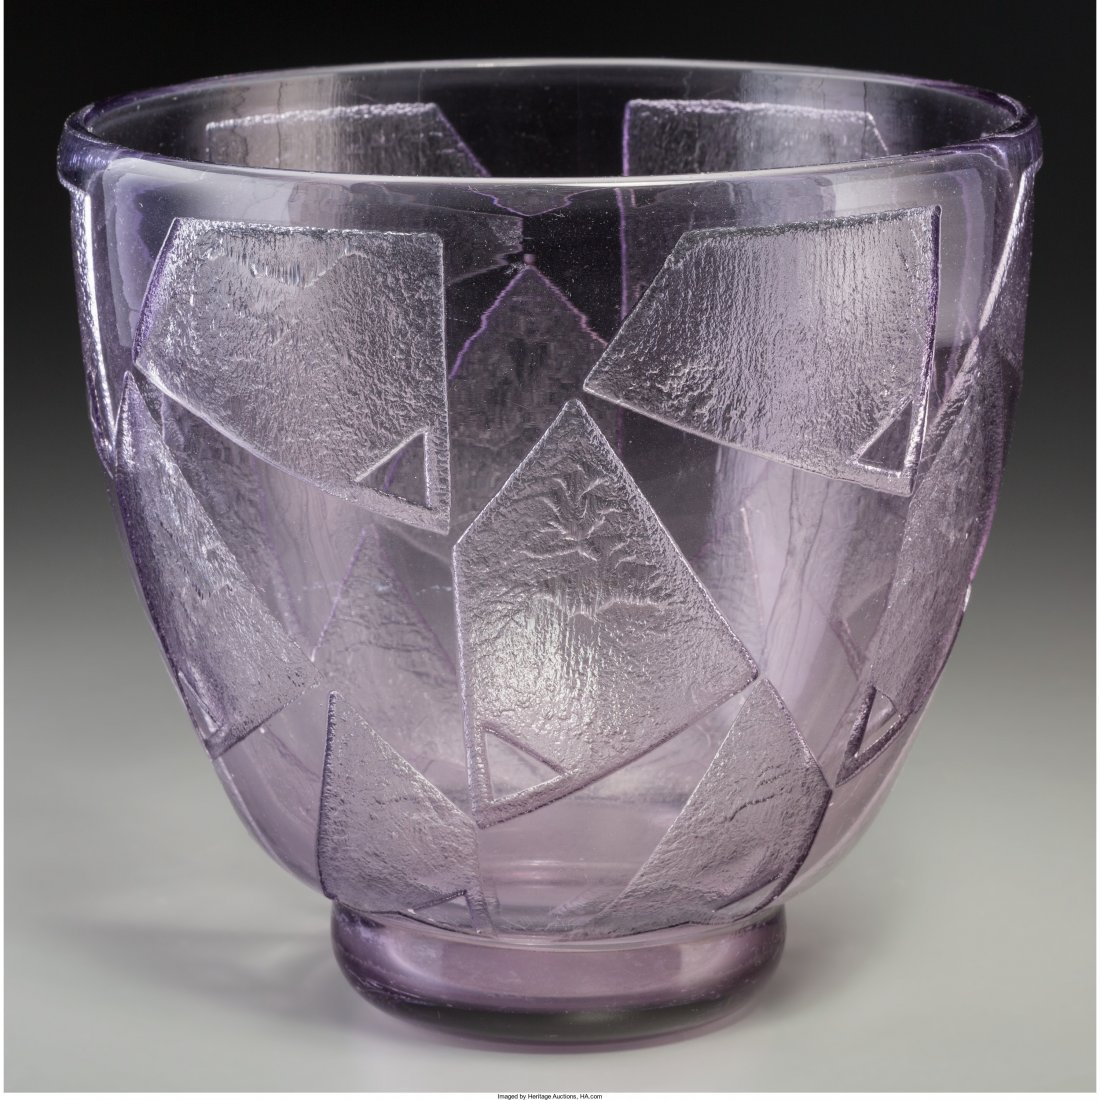 63035: Daum Art Deco Amethyst Acid-Etched Glass Vase Ci - 2